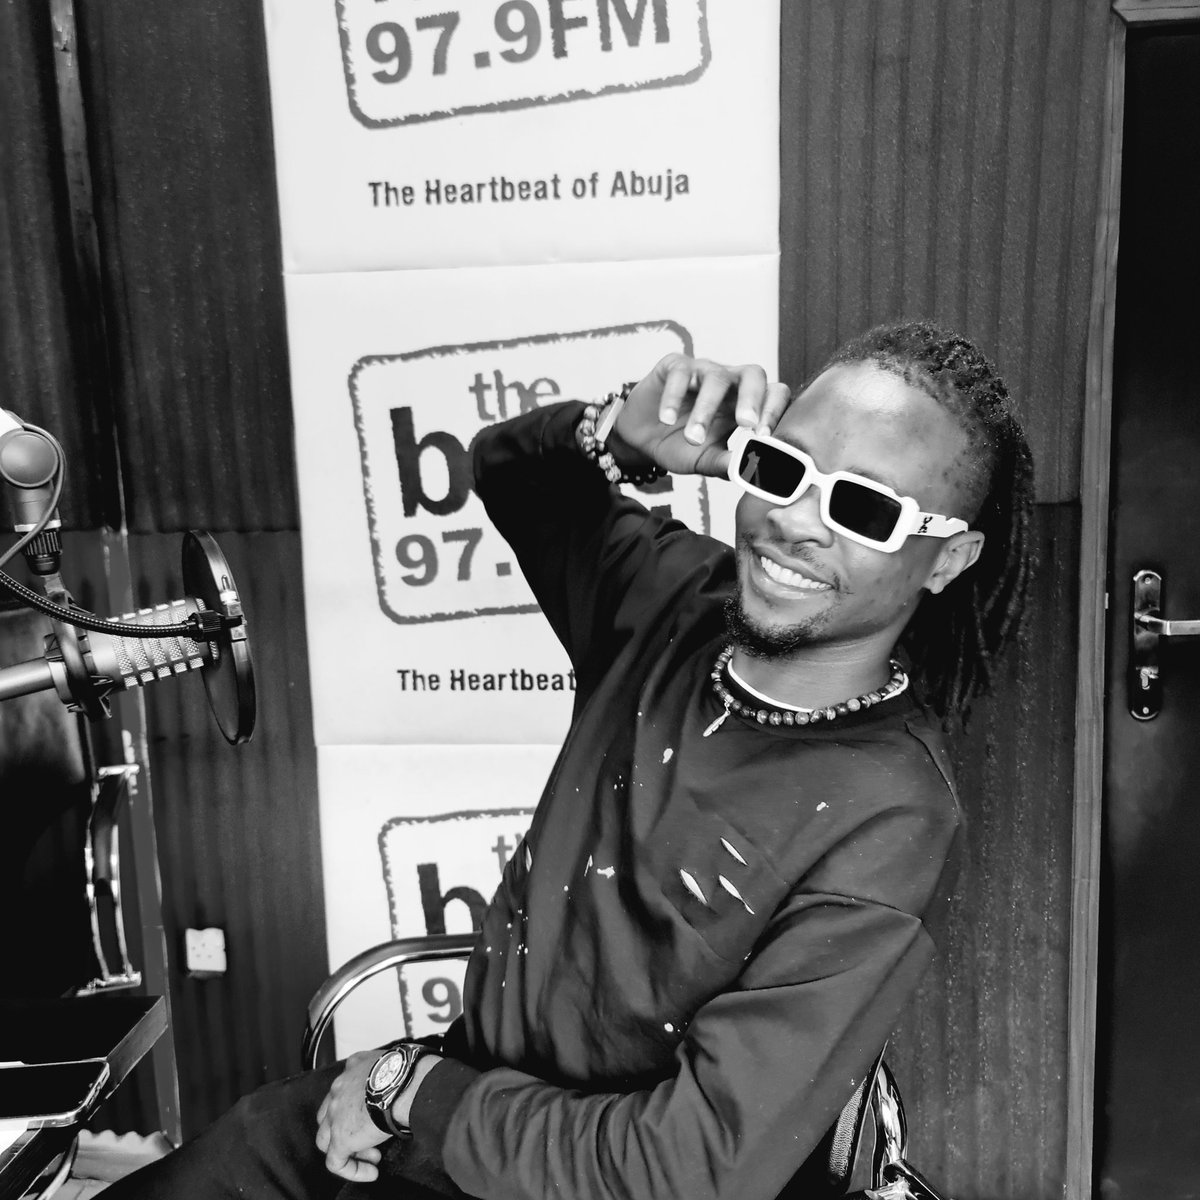 Abuja! I'm live on @TheBeat97ABJ.. Let's catch this cruise 🐺